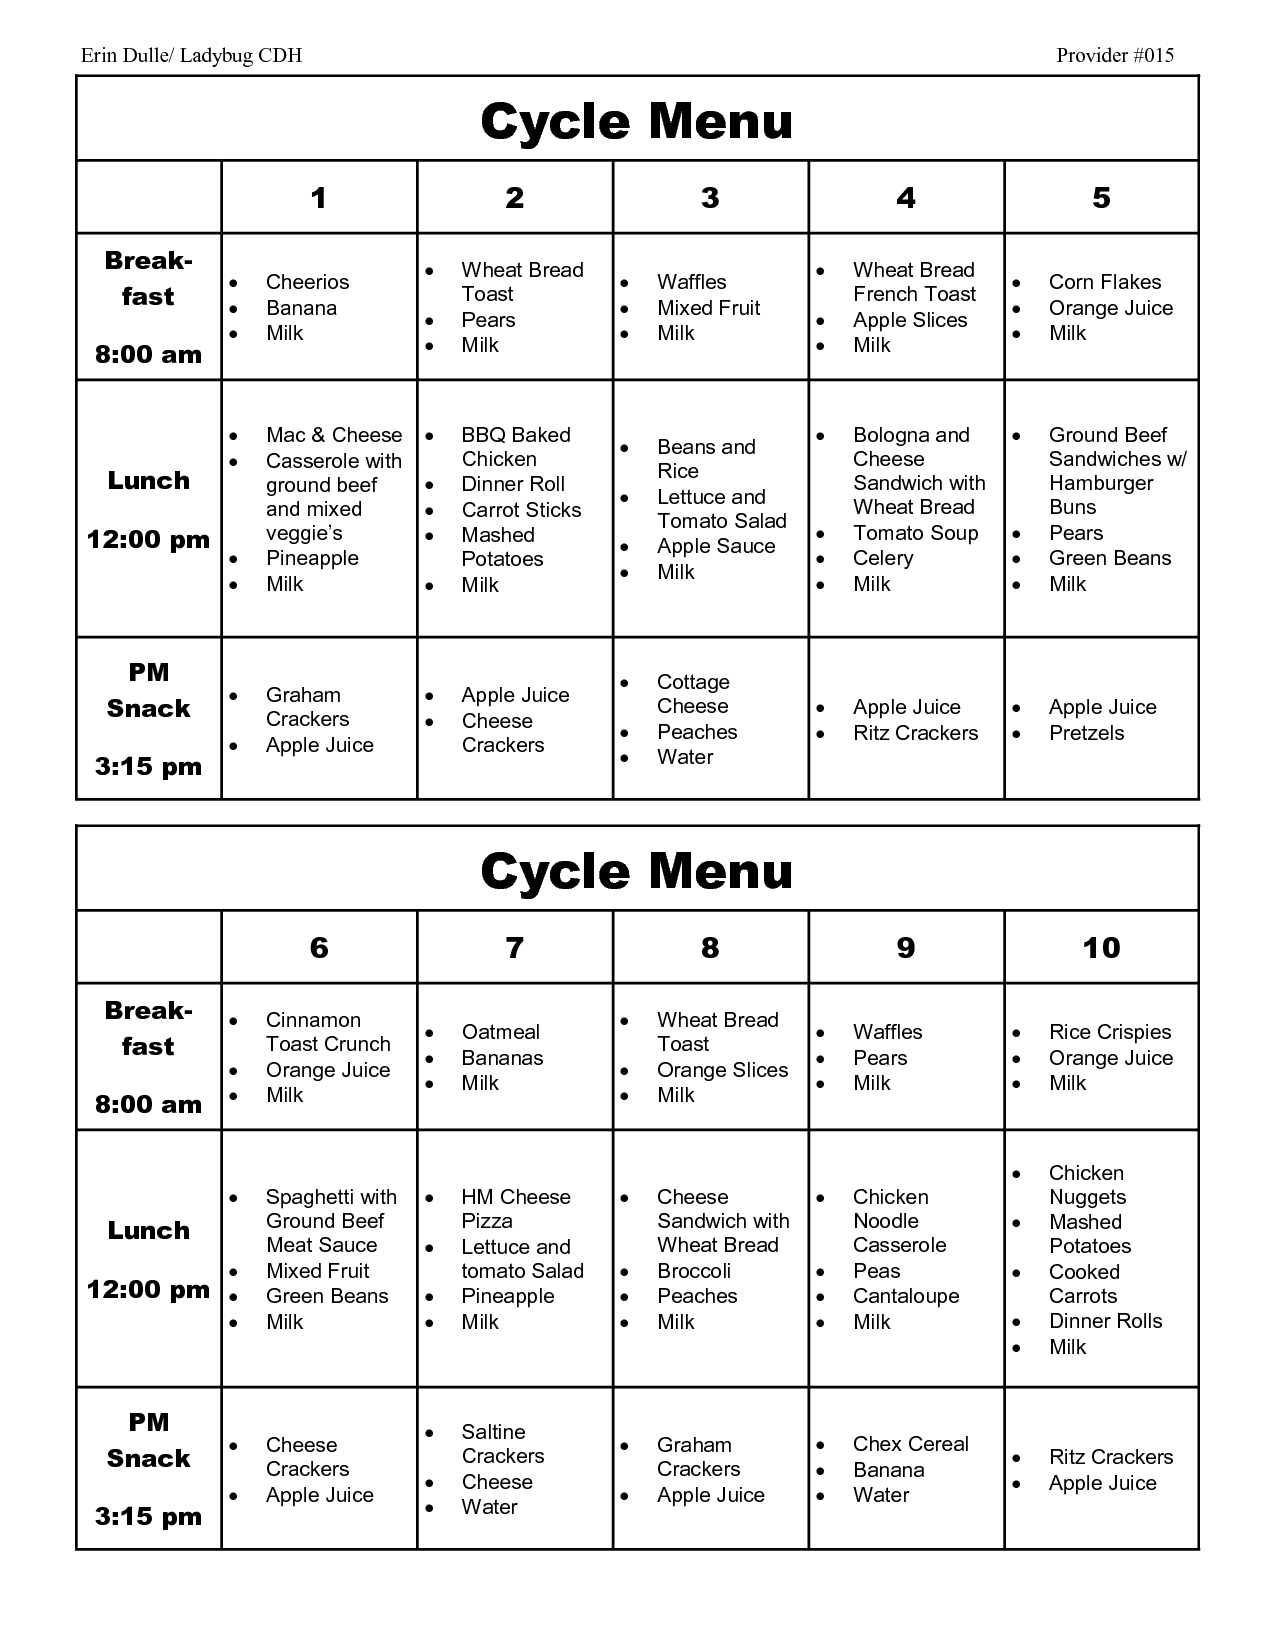 Cycle Menu Template | Cycle Menu | Menu Template, Military pertaining to Cycle Menu Template